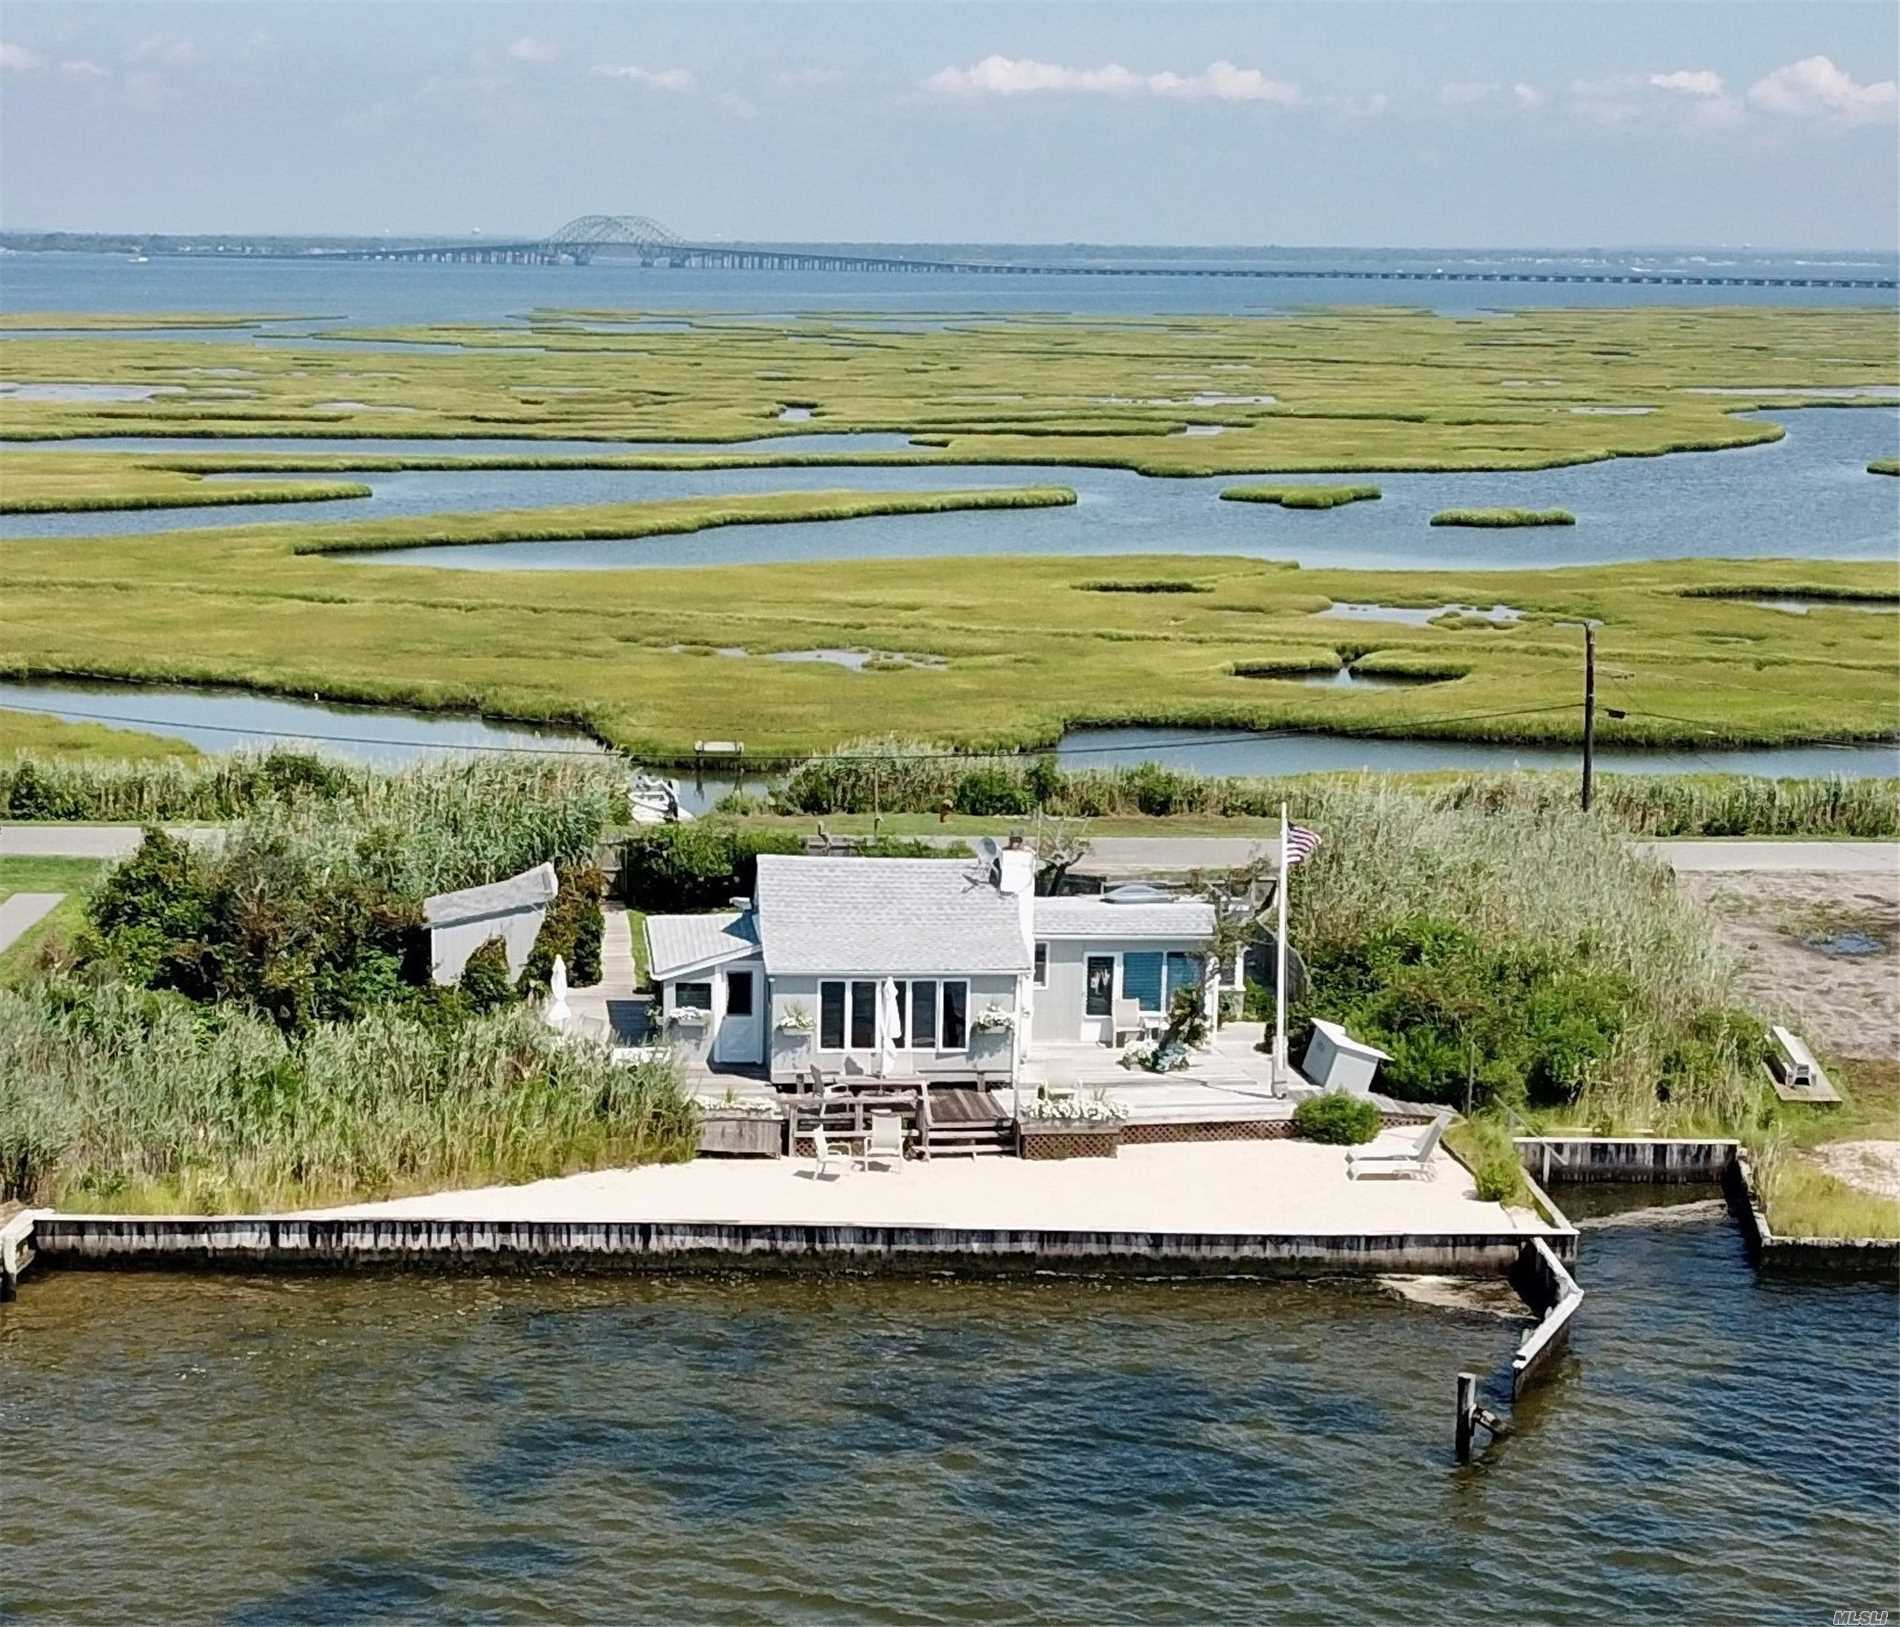 Lovely Summer Home Within The Captree Island Community! Peace And Tranquility Will Flow Over You From Your Private Waterside Deck. Amazing Channel & Bay Views Captivate The Experience Of This 1, 600 Sqft Beach House Lifestyle With Tons Of Natural Light Featuring Hardwood Floors, Artisan Well, Plenty Of Storage Along With Parking For Up To 6 Cars, 100Ft Bulkhead